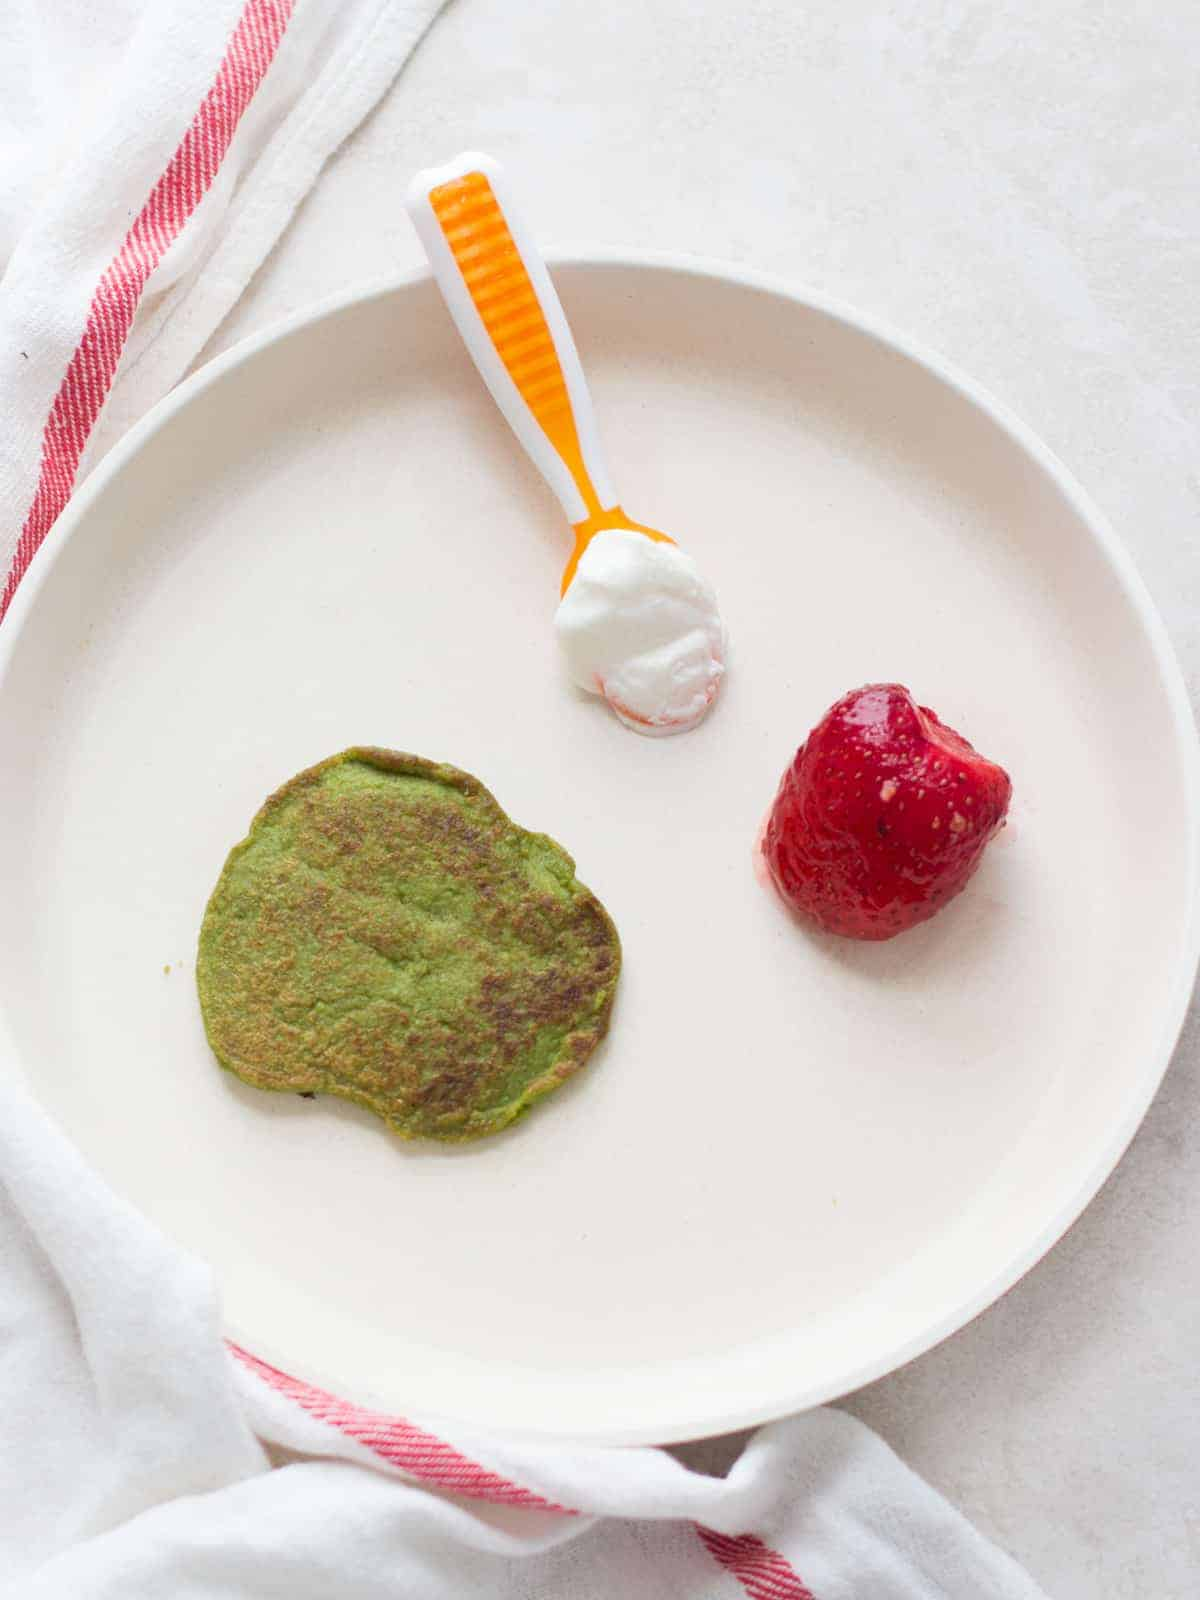 spinach pancake, Greek yogurt preloaded onto a baby spoon, and a strawberry serve on a white plate